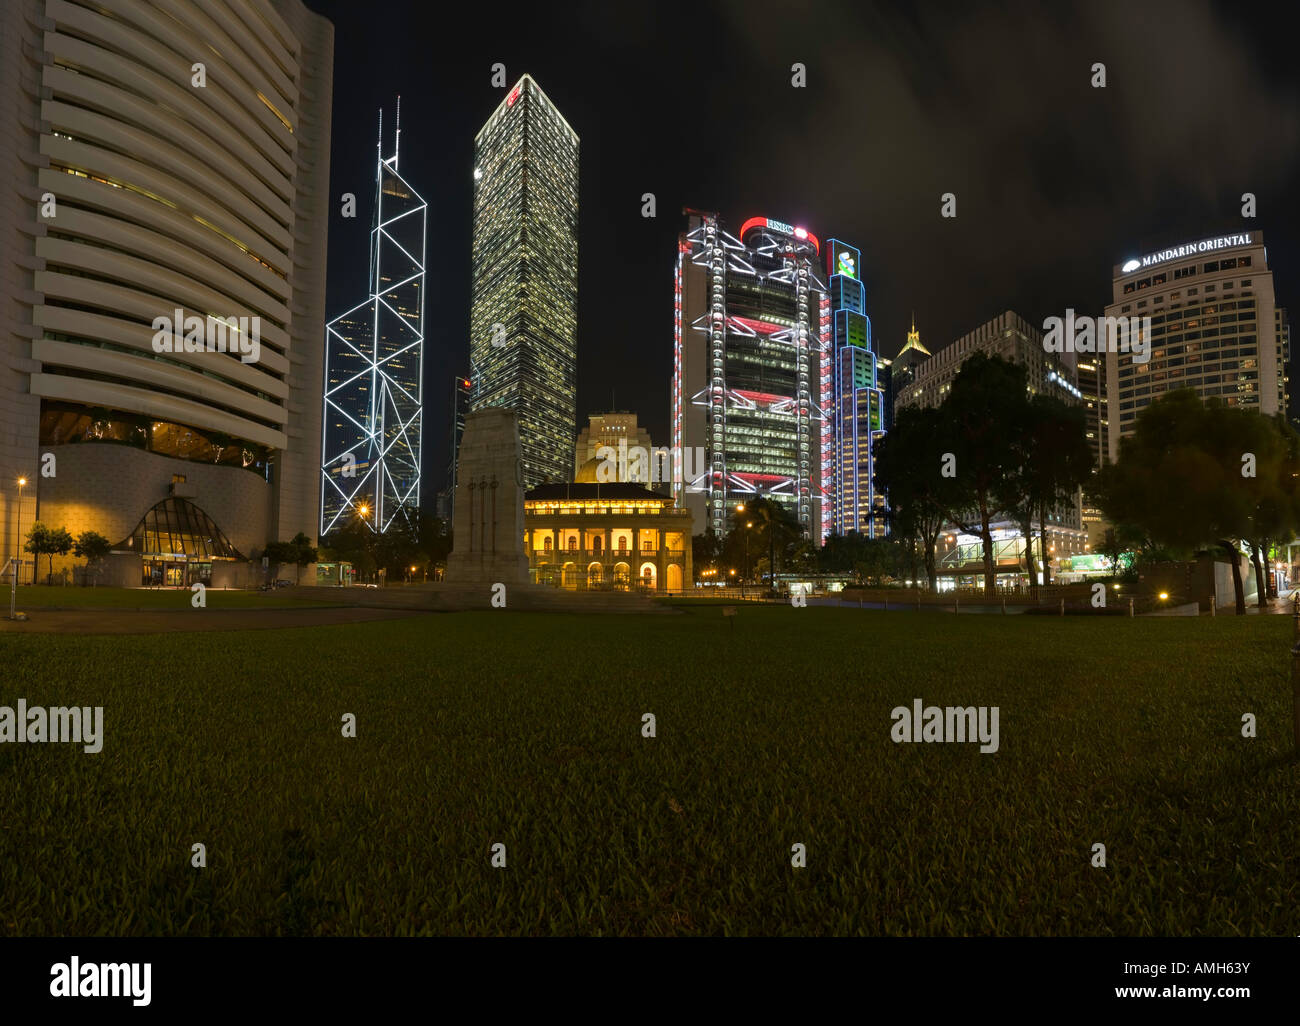 A night-time panorama of the area around the Cenotaph and Statue Square, Hong Kong, China. - Stock Image